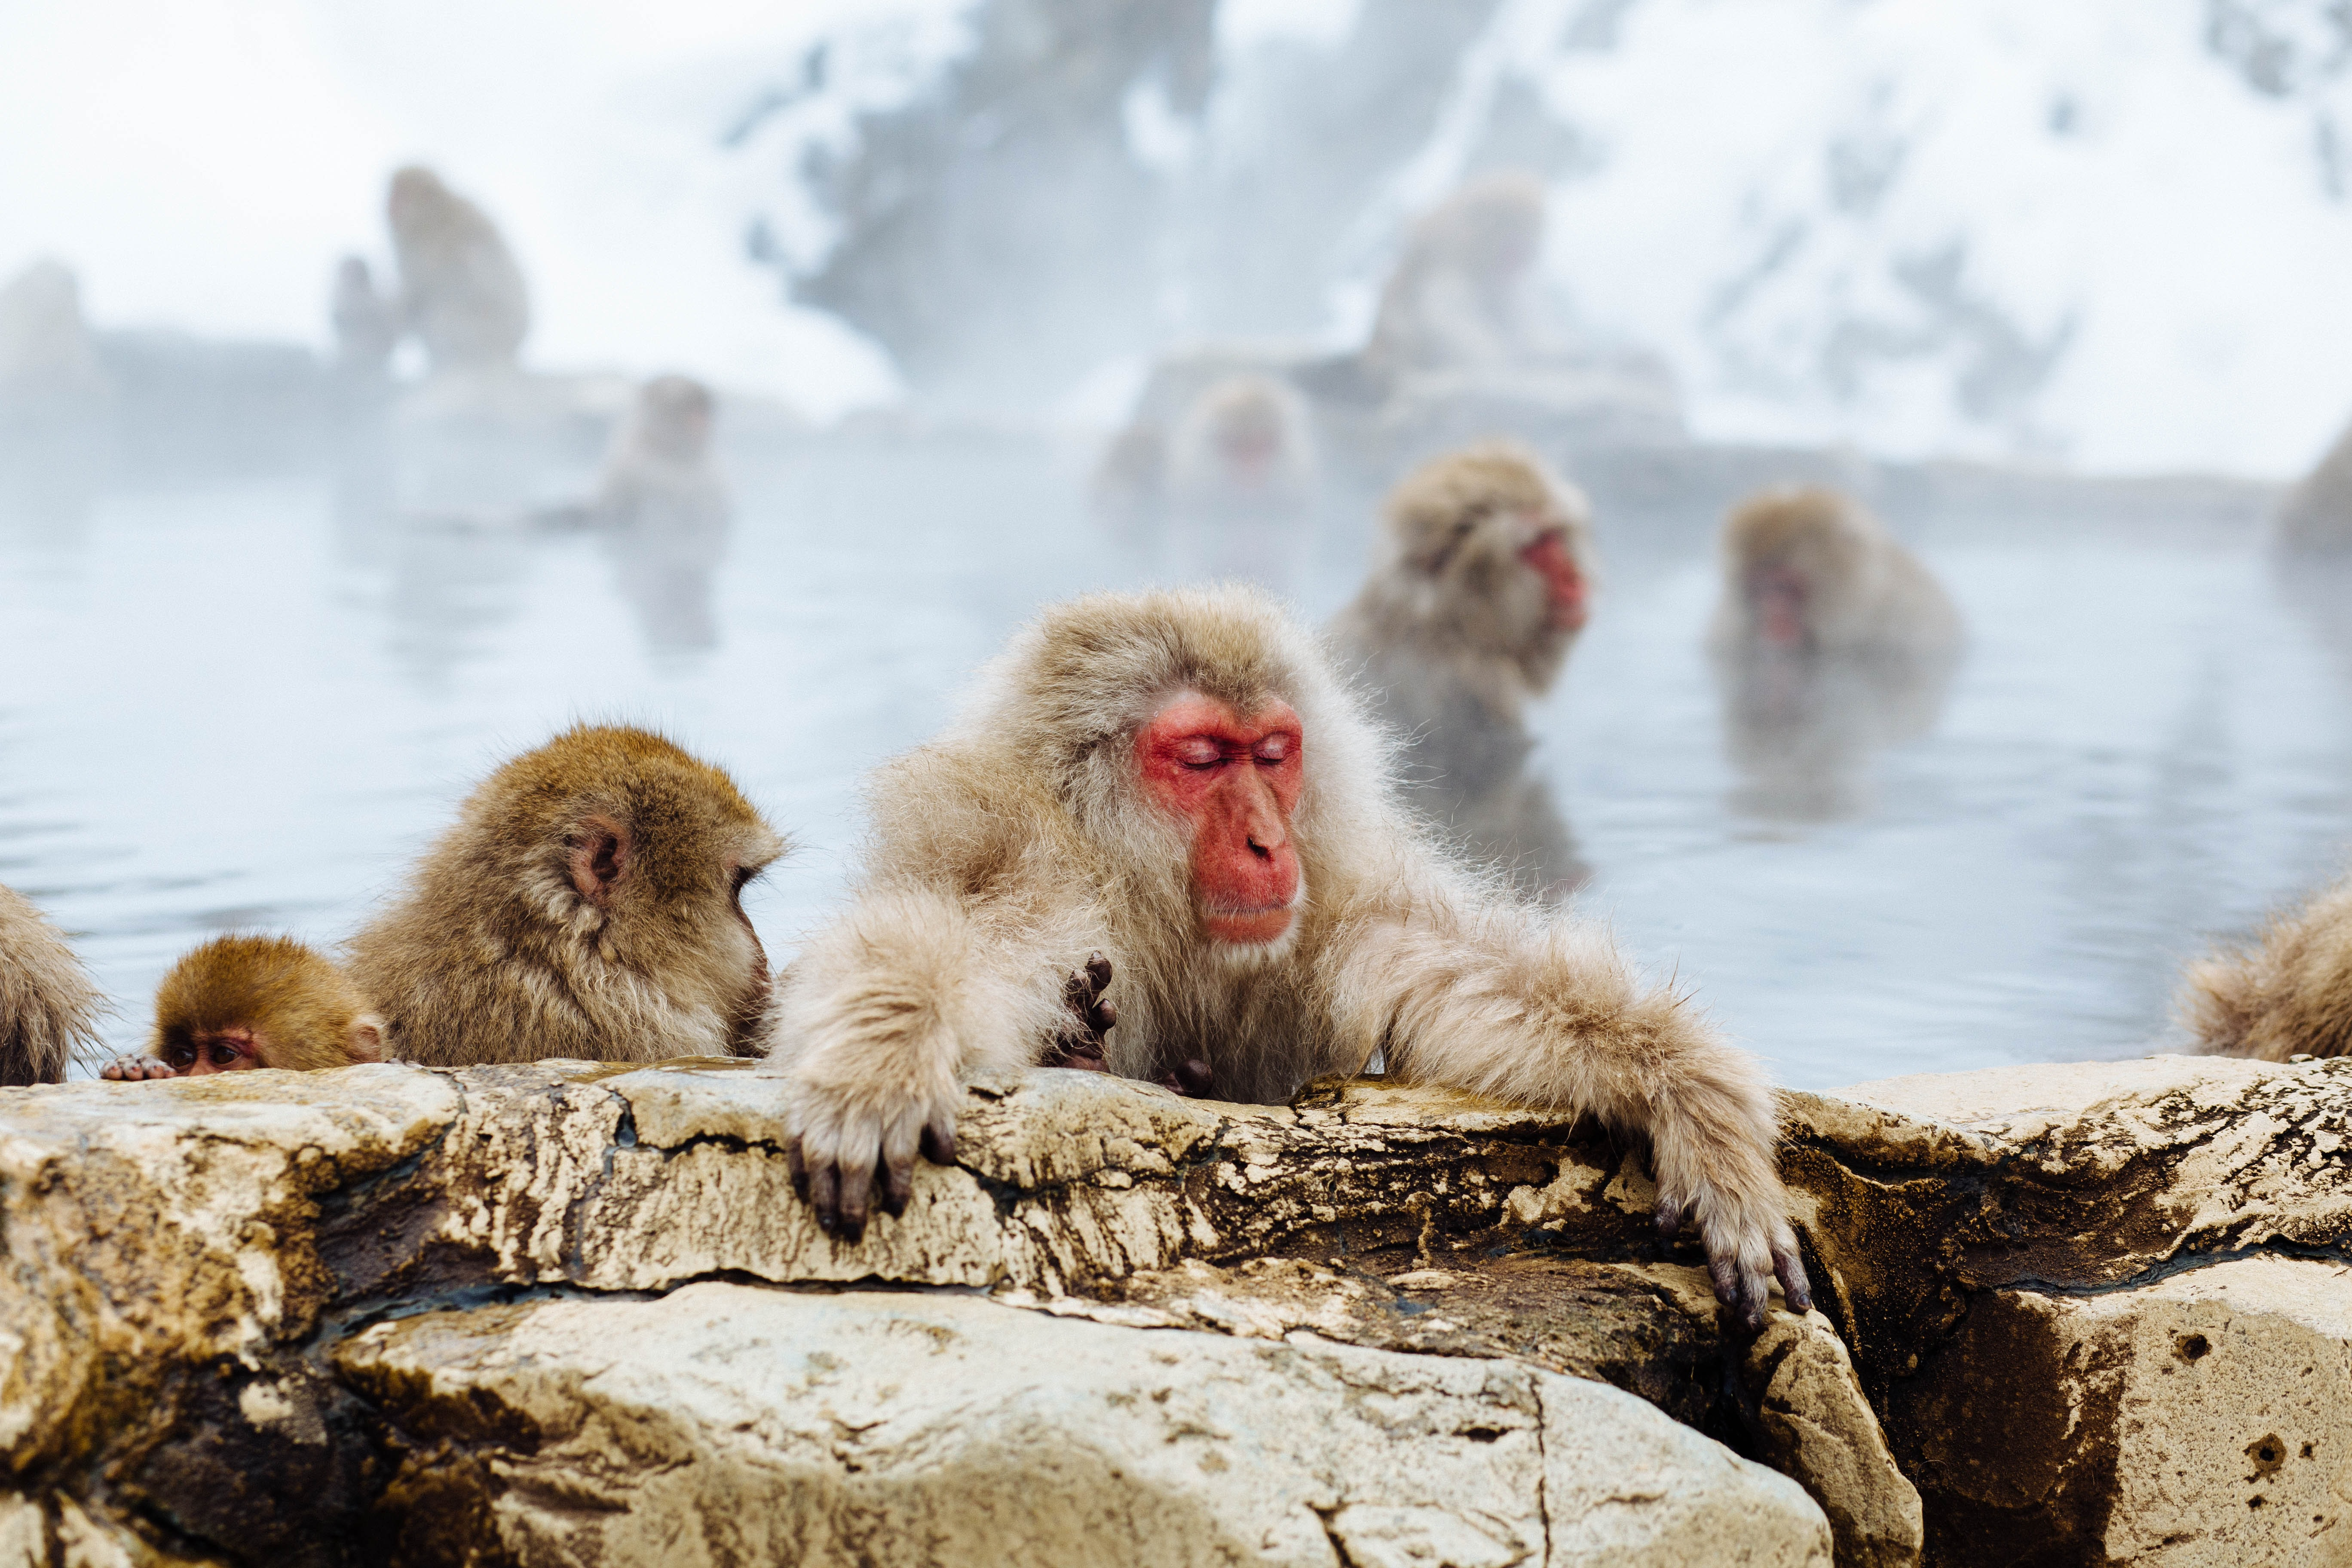 primates soaking in hot spring